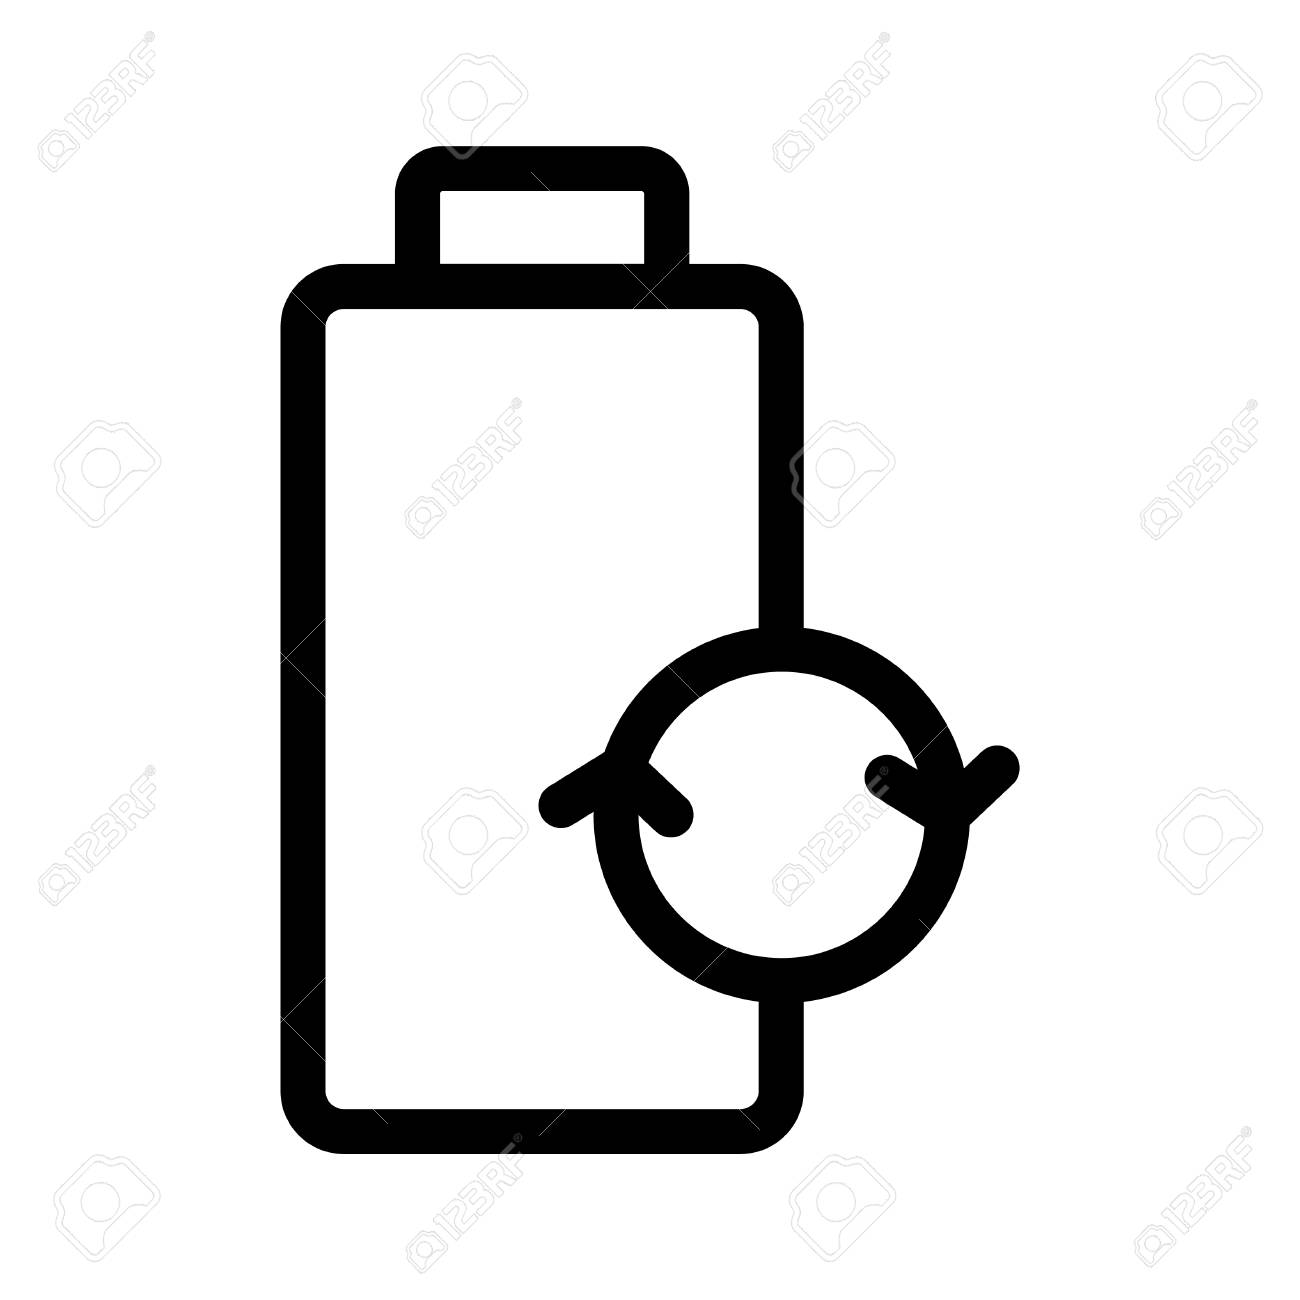 battery vector icon royalty free cliparts vectors and stock illustration image 110360685 123rf com